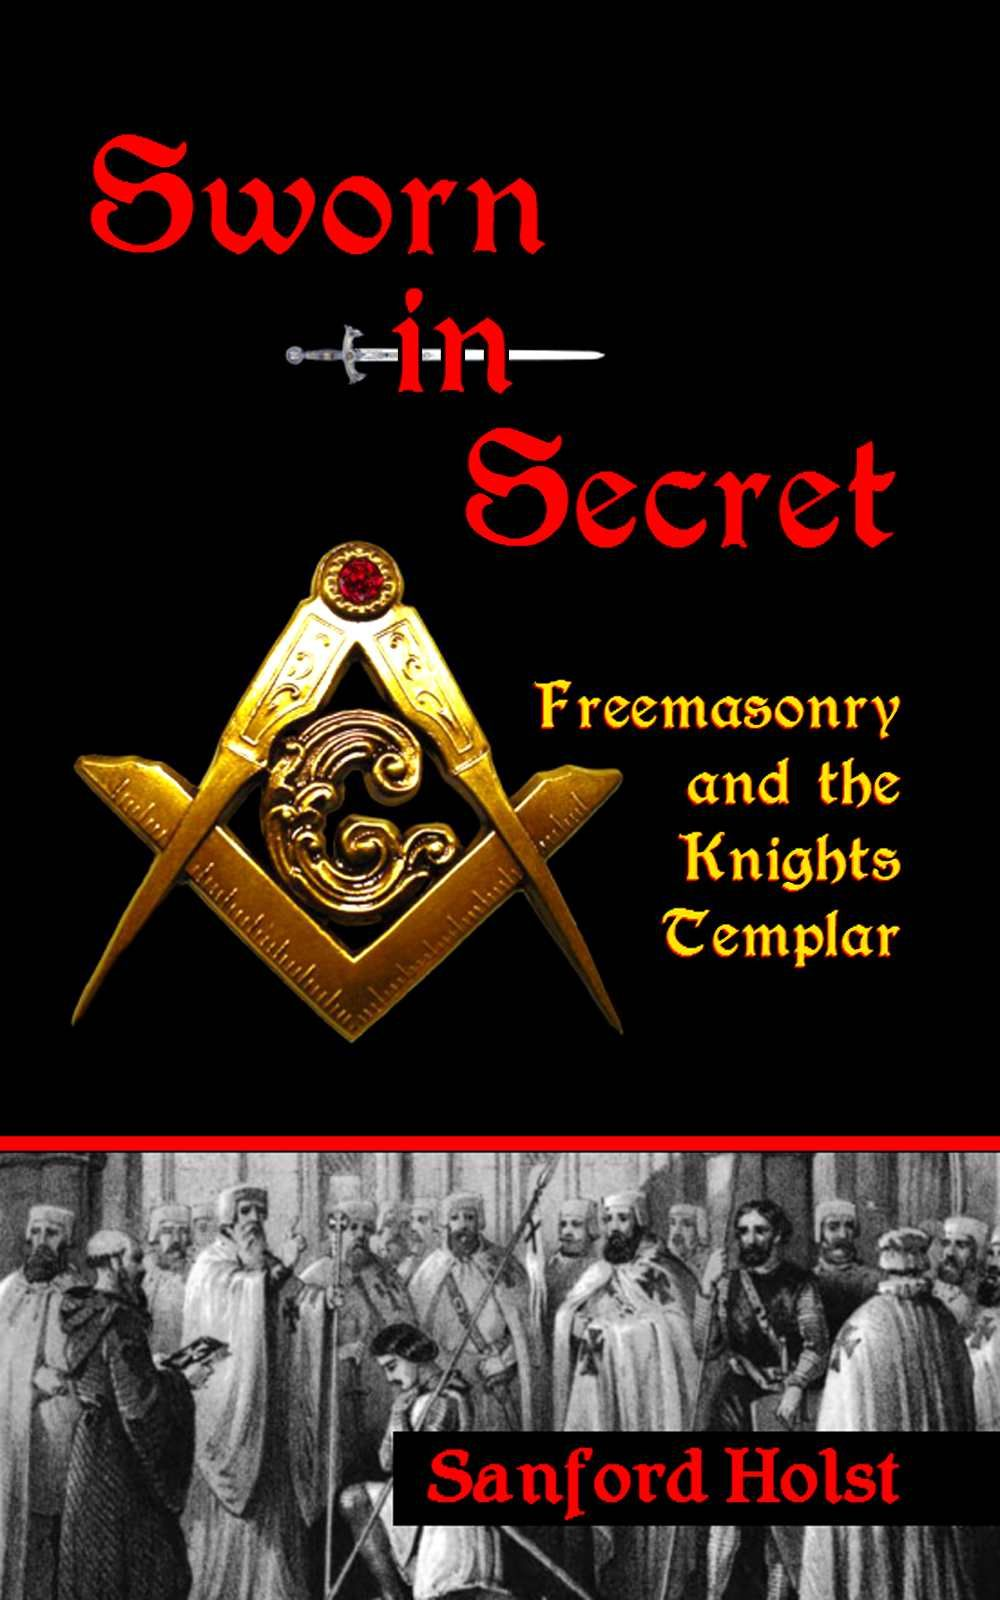 Some Deeper Aspects of Masonic Symbolism: Foundations of Freemasonry Series (Unabridged)